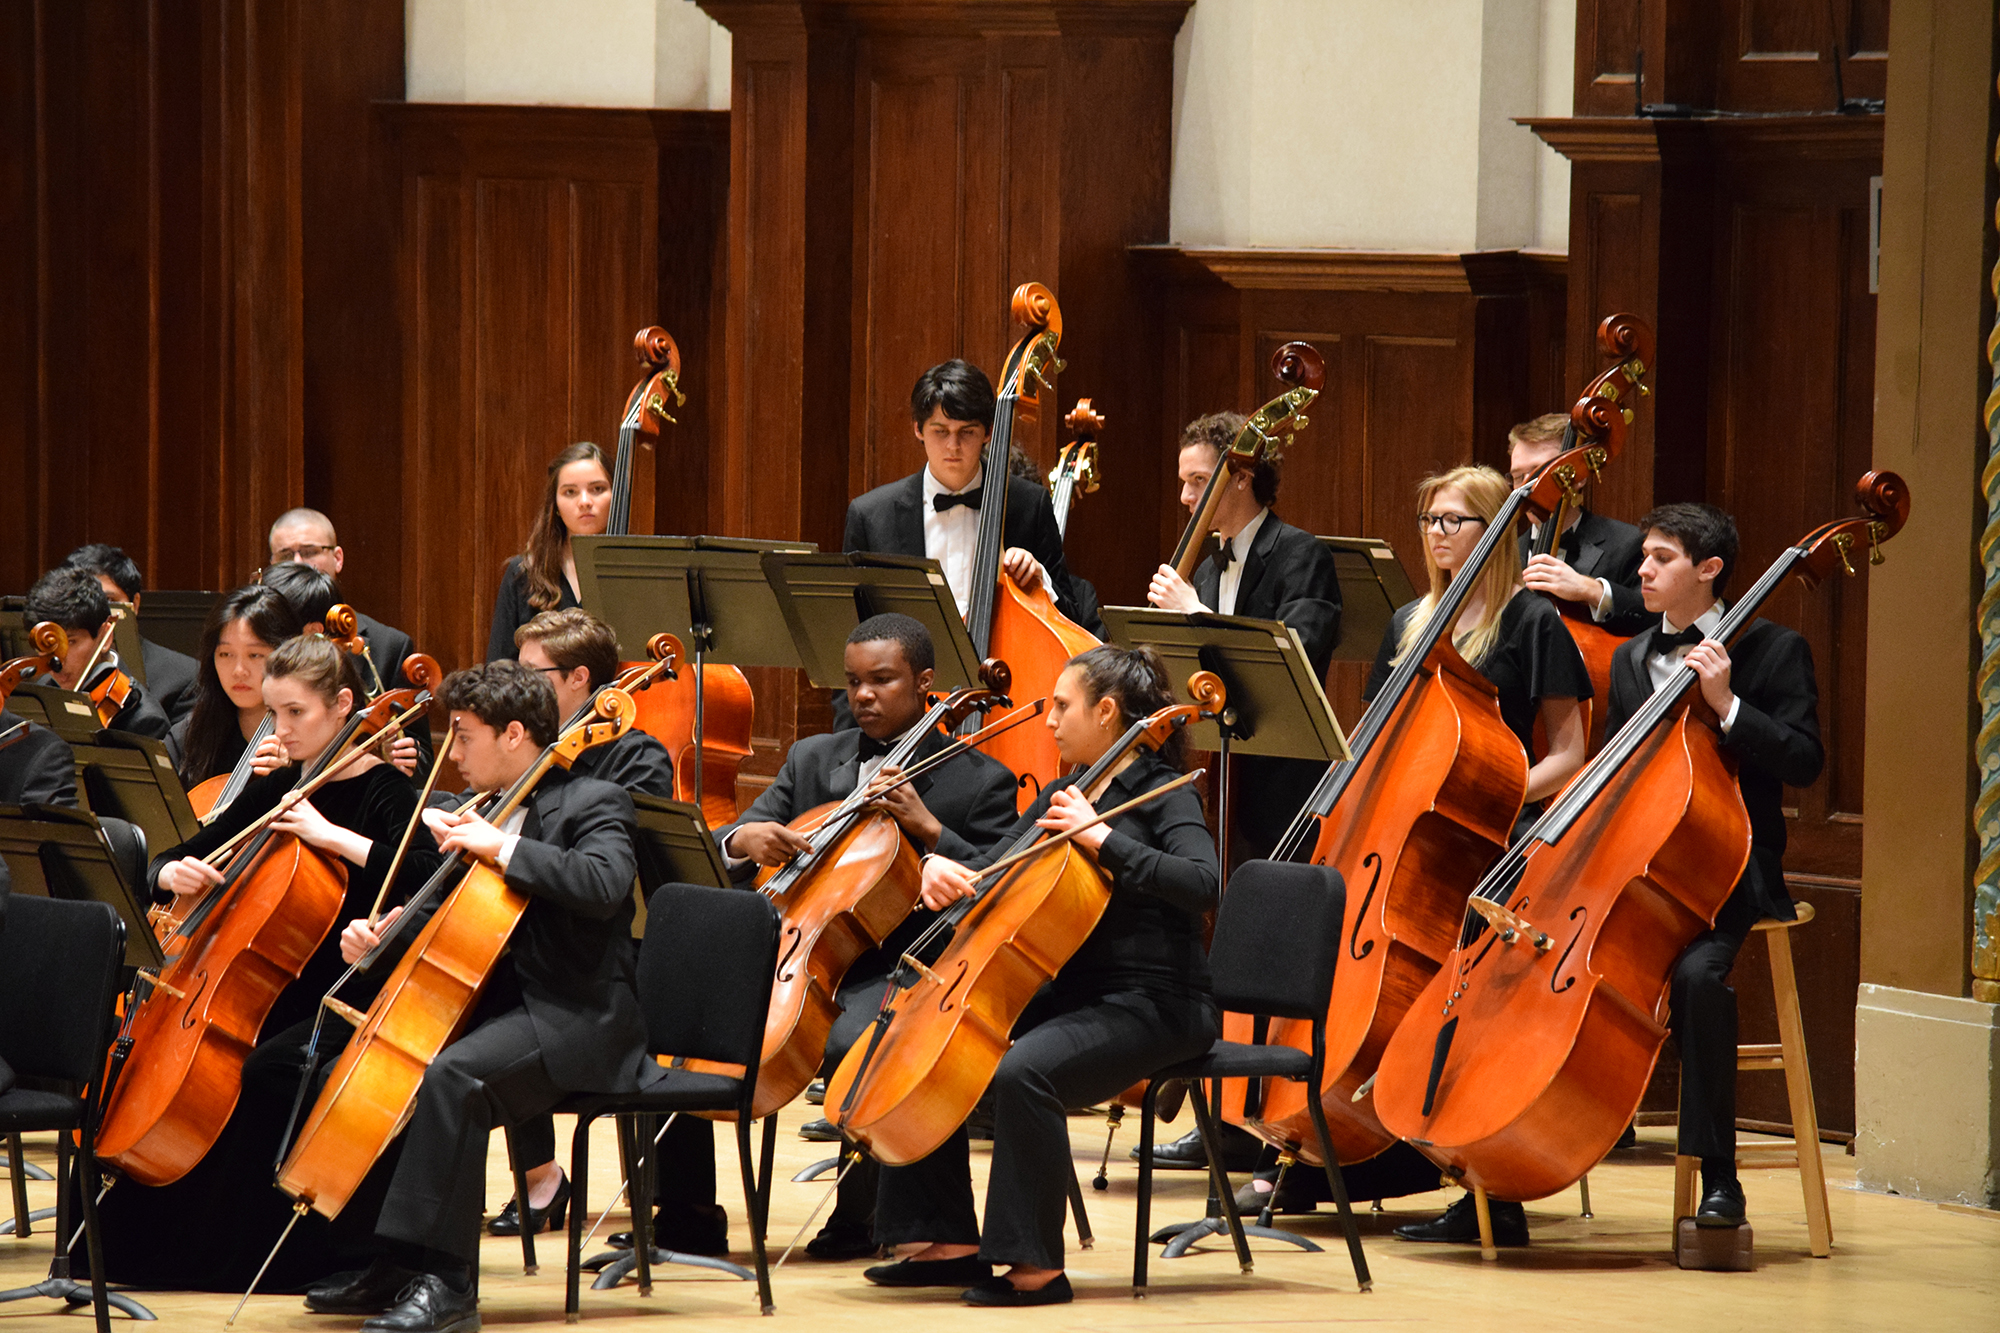 Civic Concert String Orchestra -